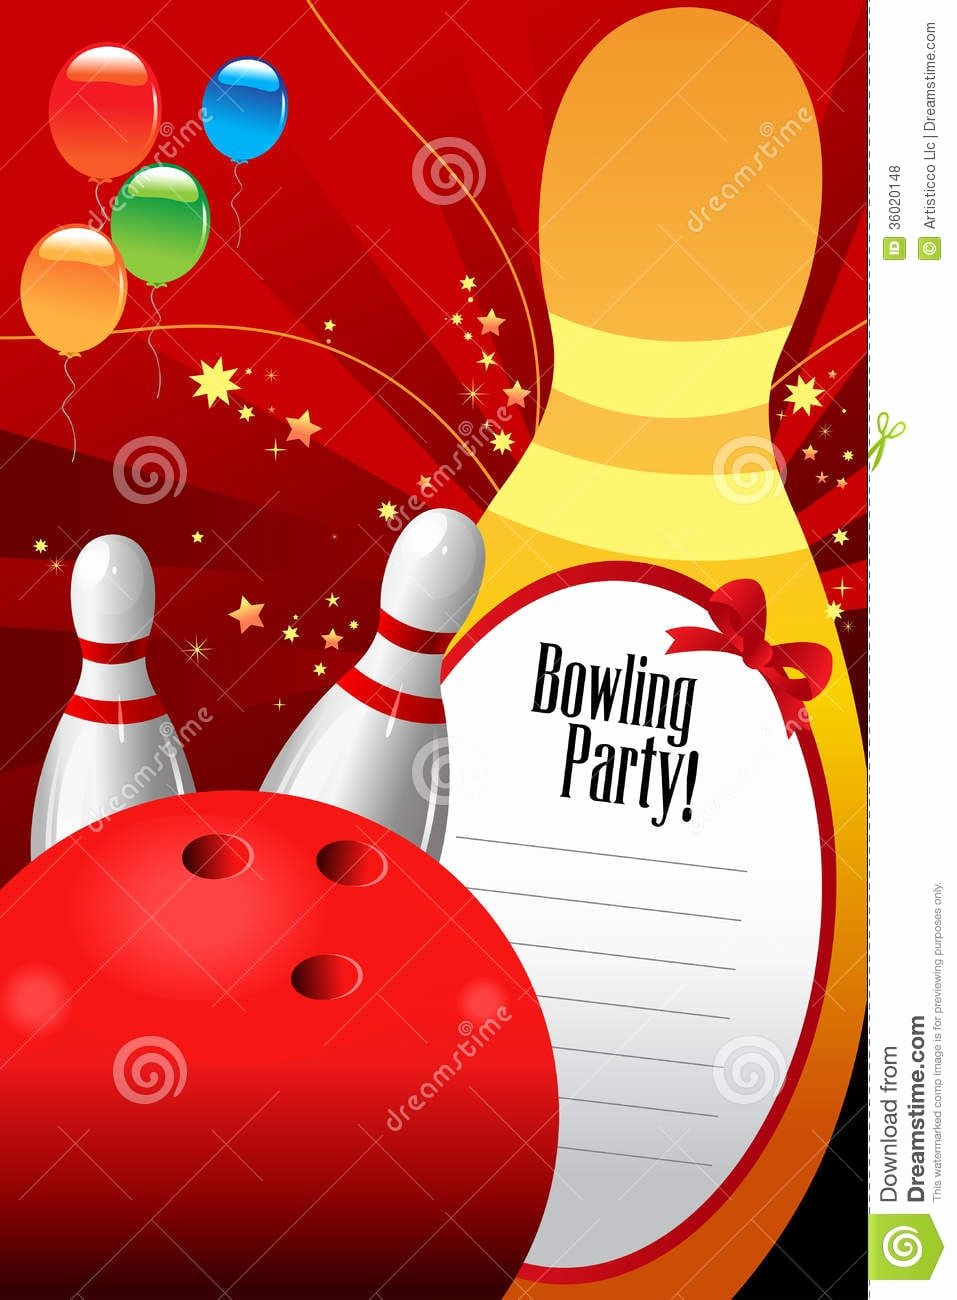 Bowling Party Invites Template Fresh Free Bowling Invitation Template